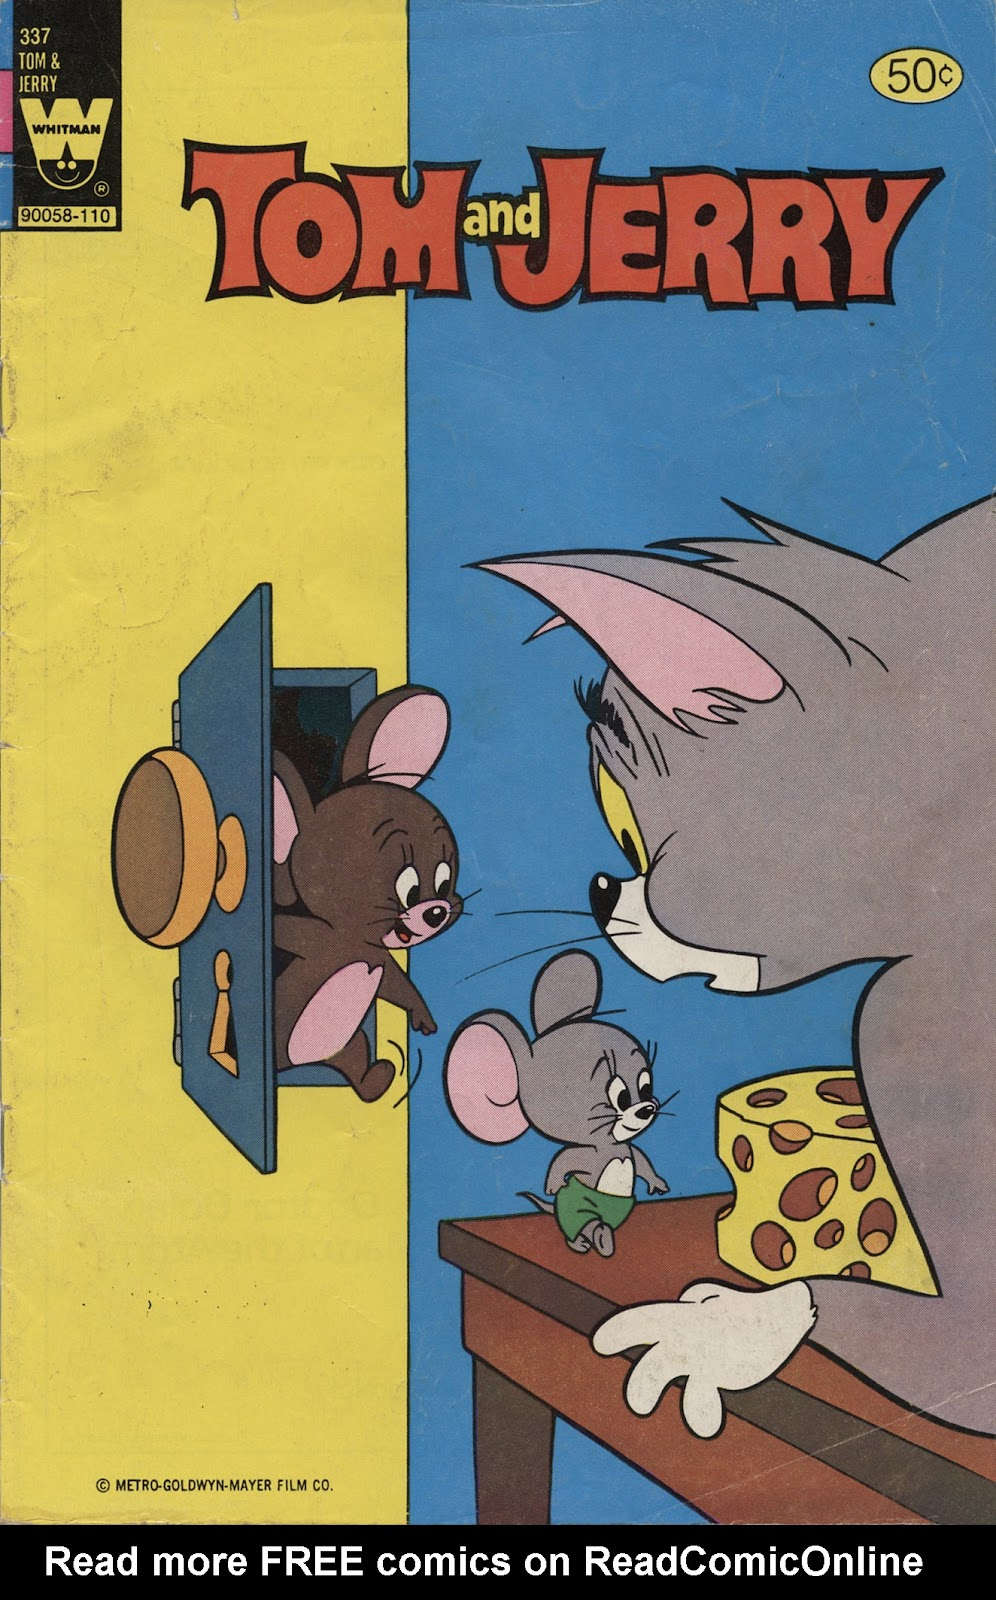 Tom and Jerry 337 Page 1